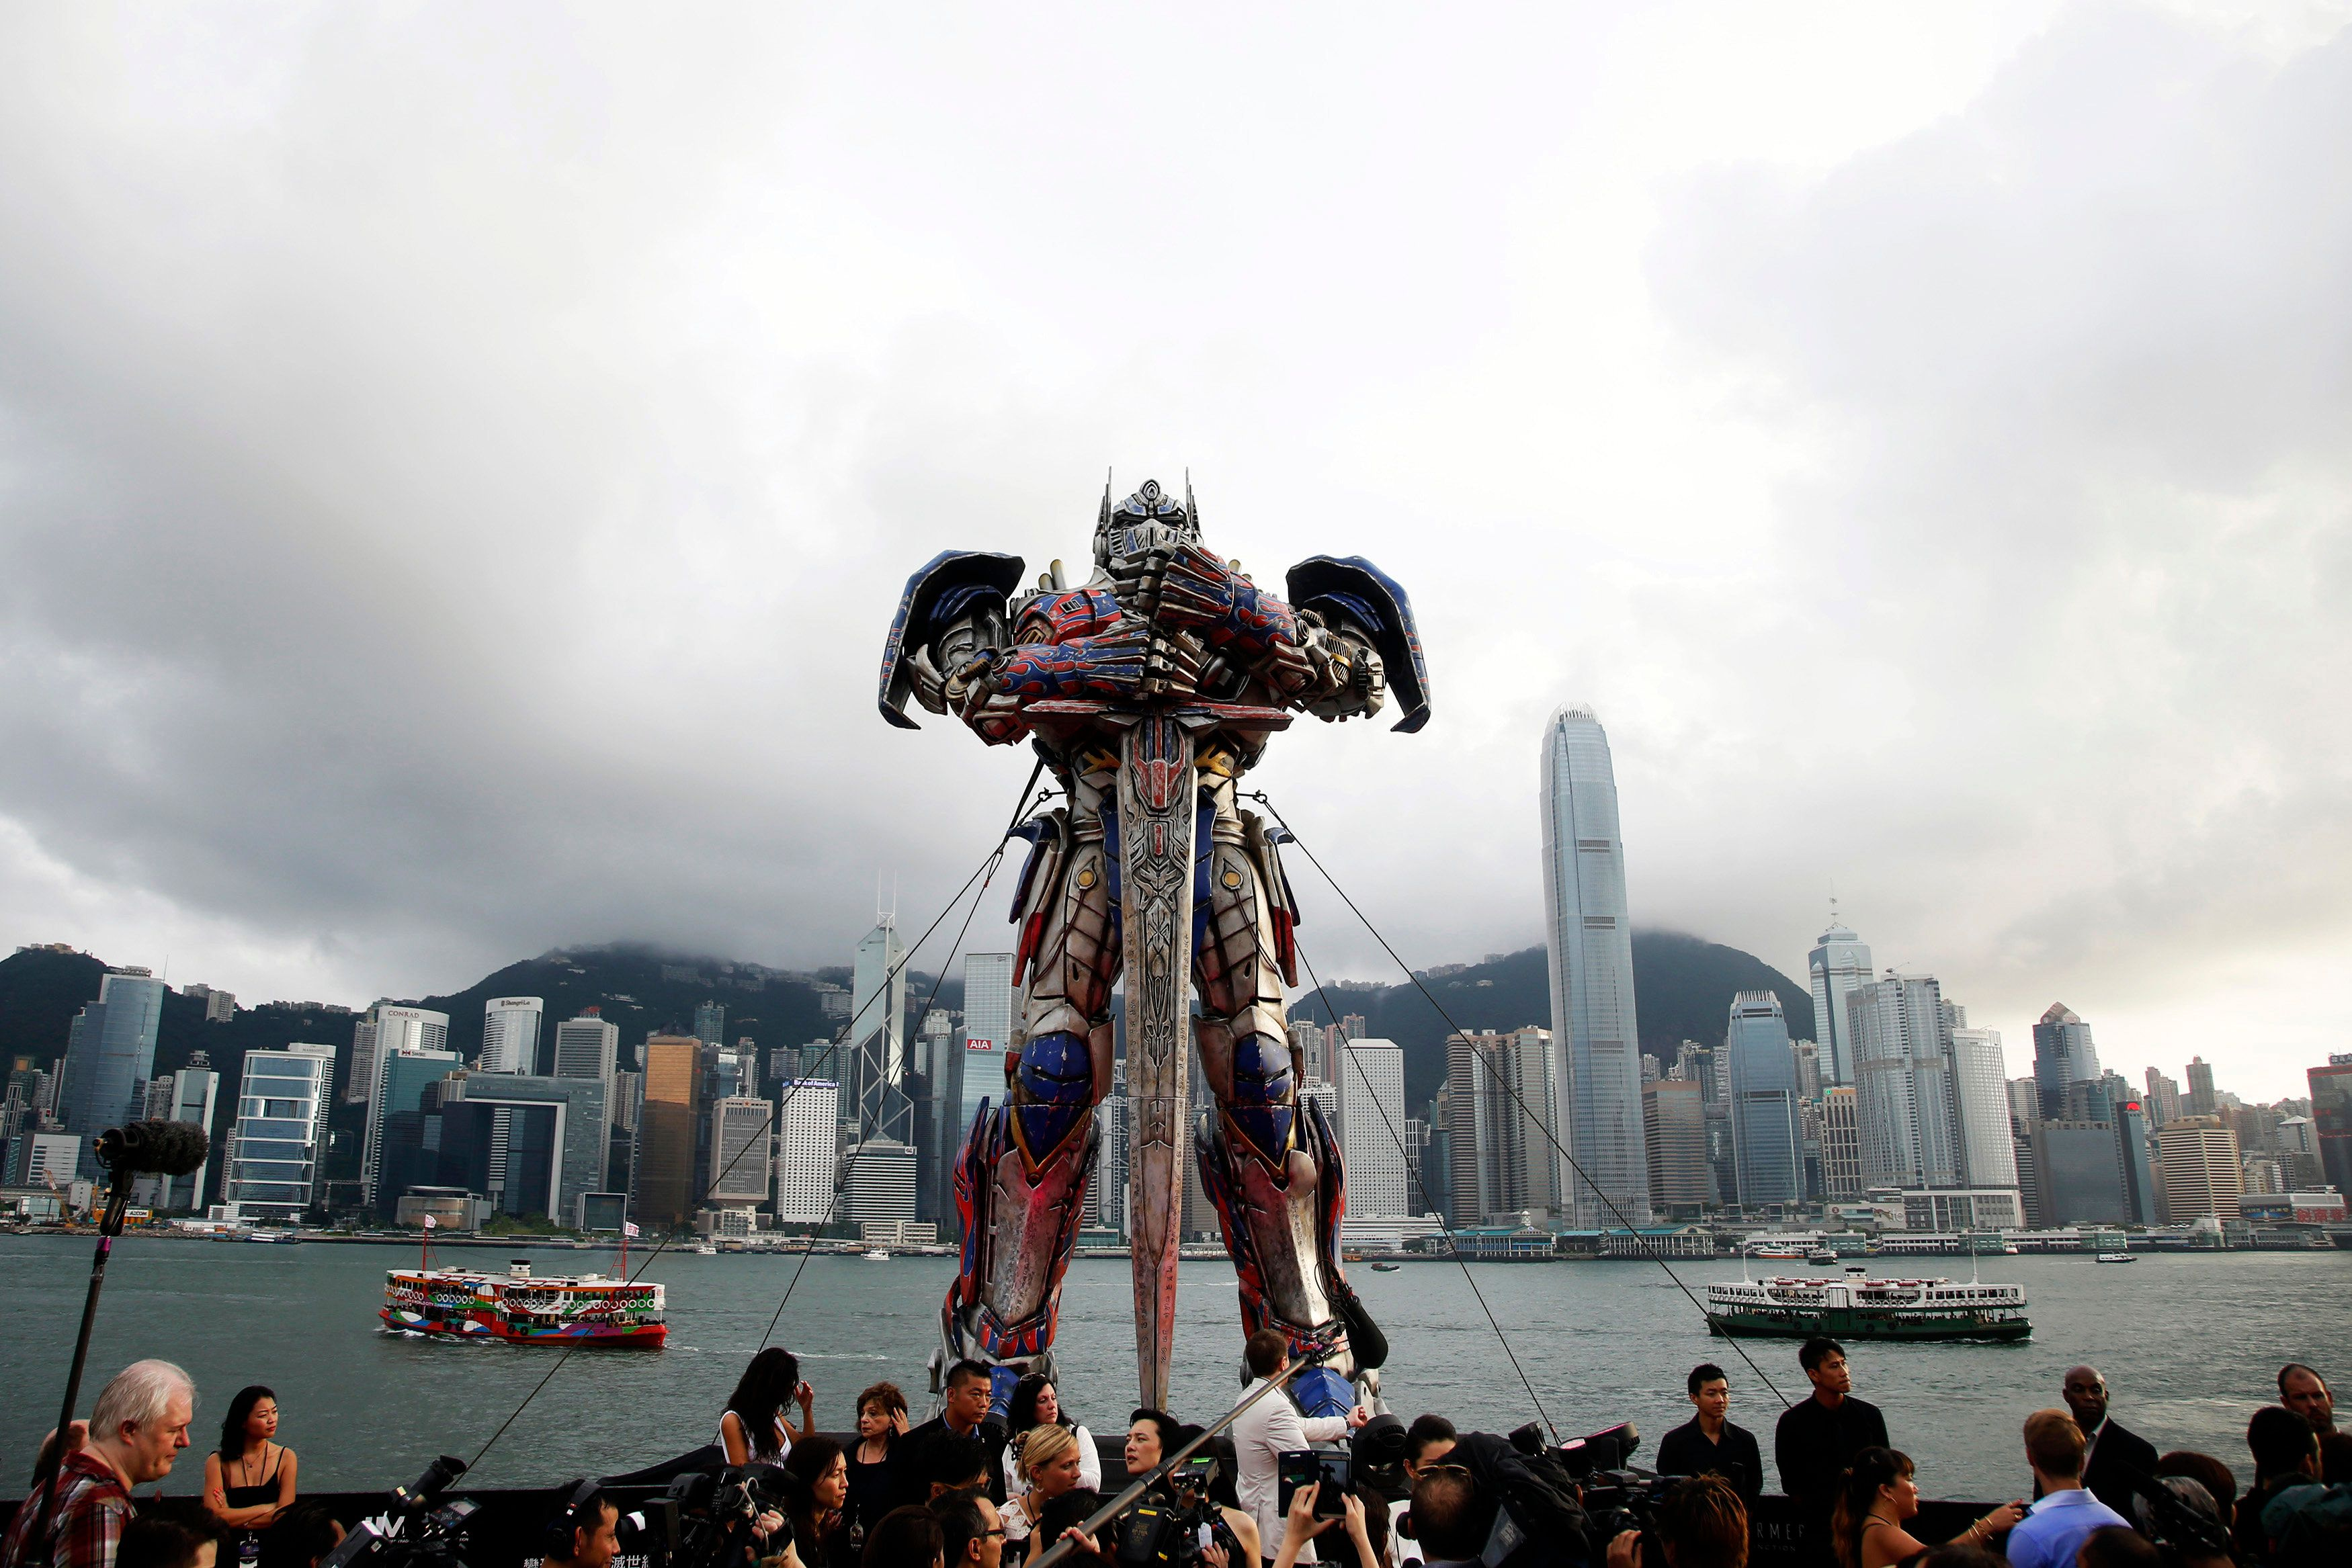 "A 21-foot tall model of the Transformers character Optimus Prime is displayed on the red carpet before the world premiere of the film ""Transformers: Age of Extinction"" in Hong Kong June 19, 2014. REUTERS/Tyrone Siu (CHINA - Tags: ENTERTAINMENT TPX IMAGES OF THE DAY)"